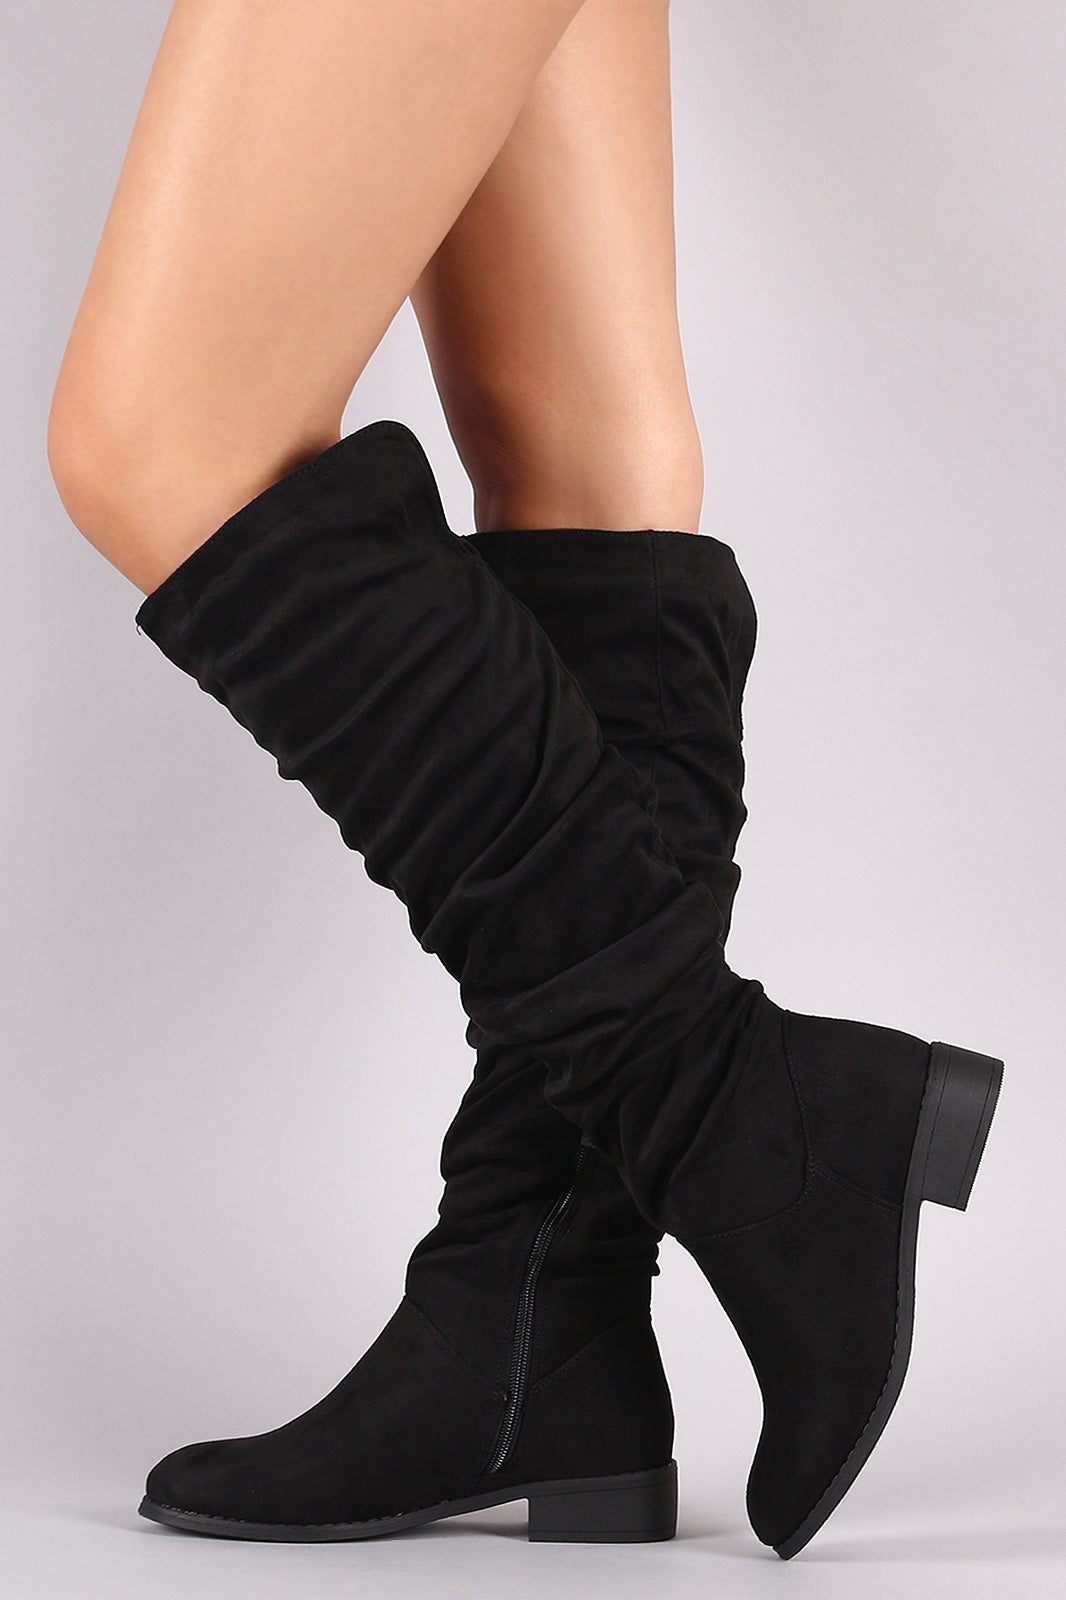 582daedfc1d Nature Breeze Olympia-25 Black Slouchy Suede Riding Knee High Boots ...